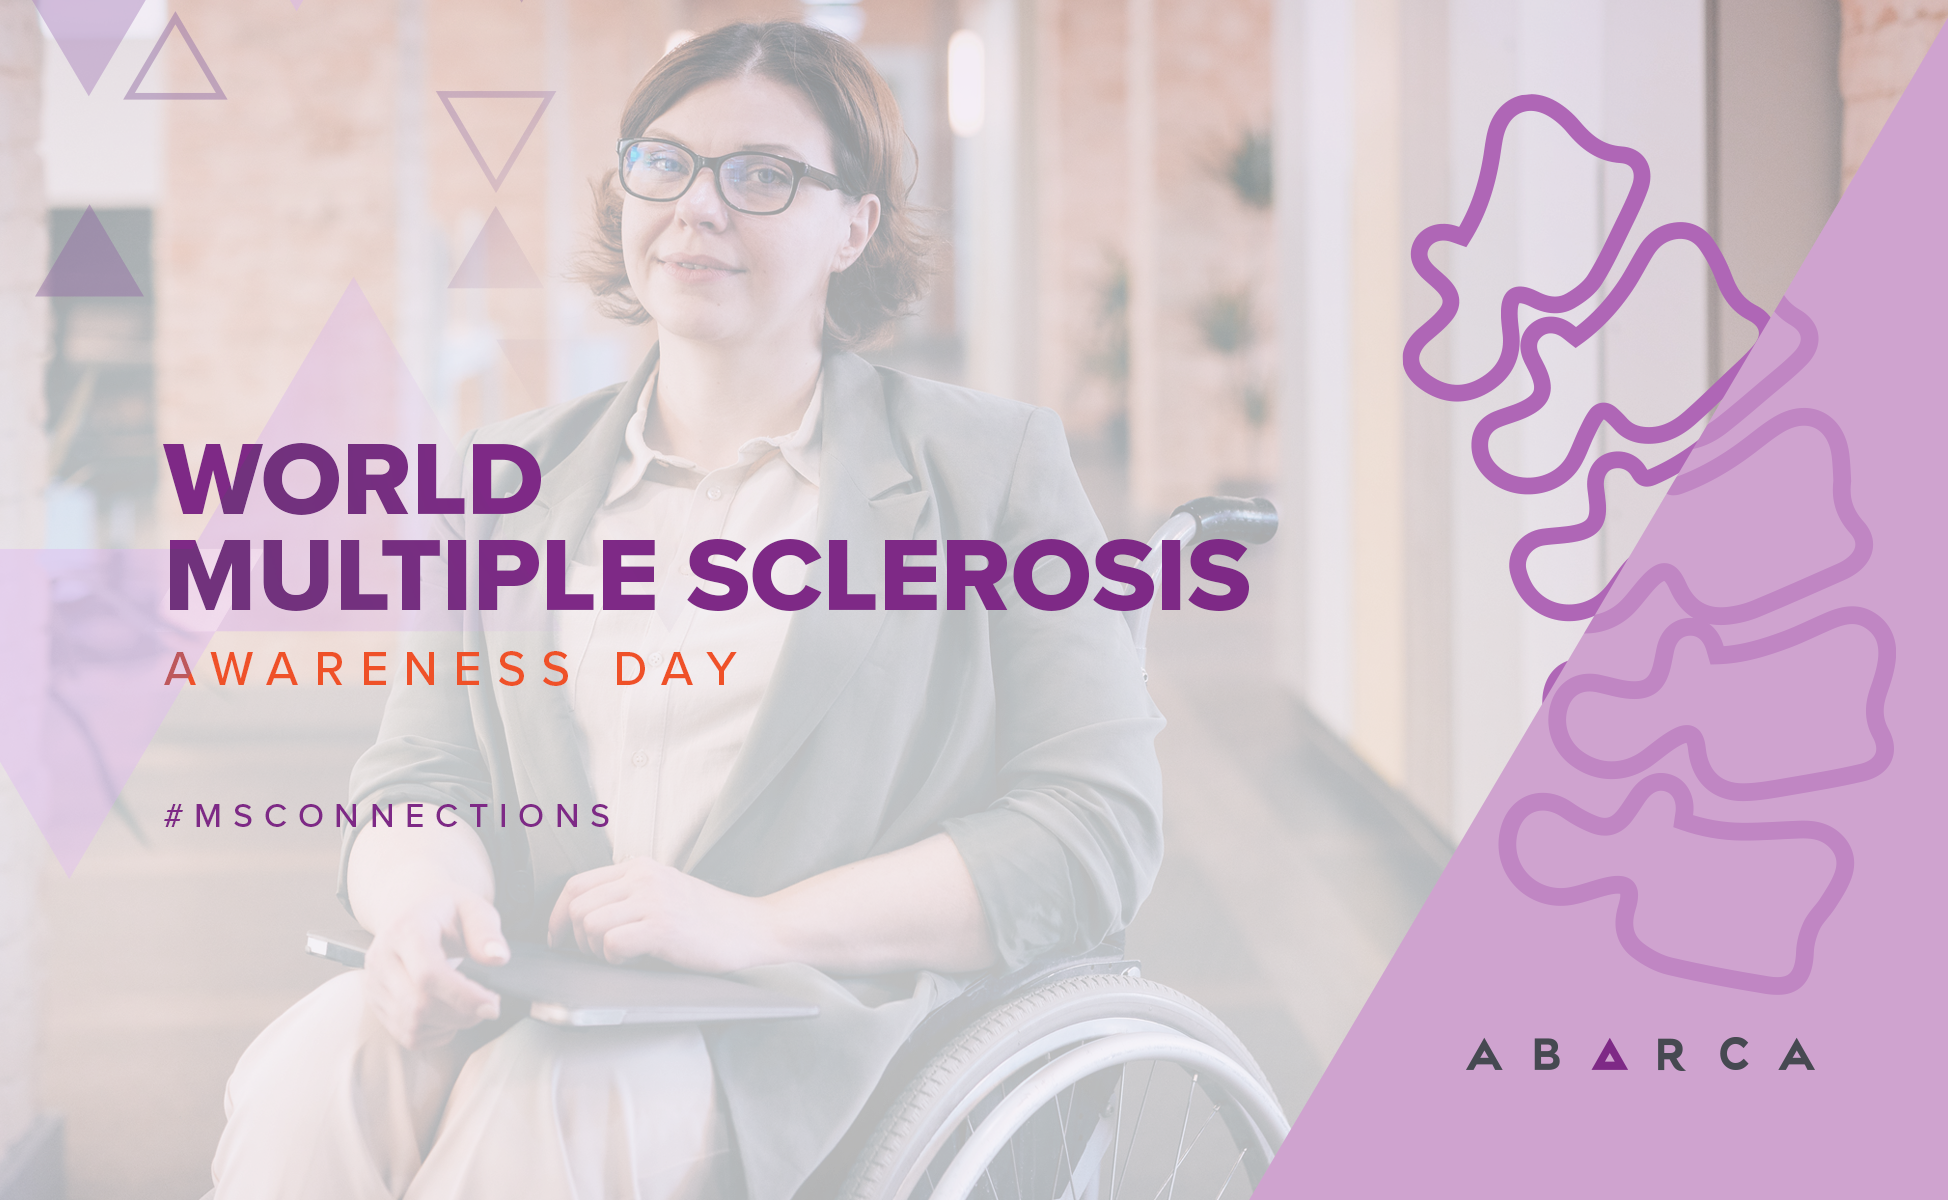 Abarcans Bringing Visibility to Multiple Sclerosis: Change the future, find your MS Connections